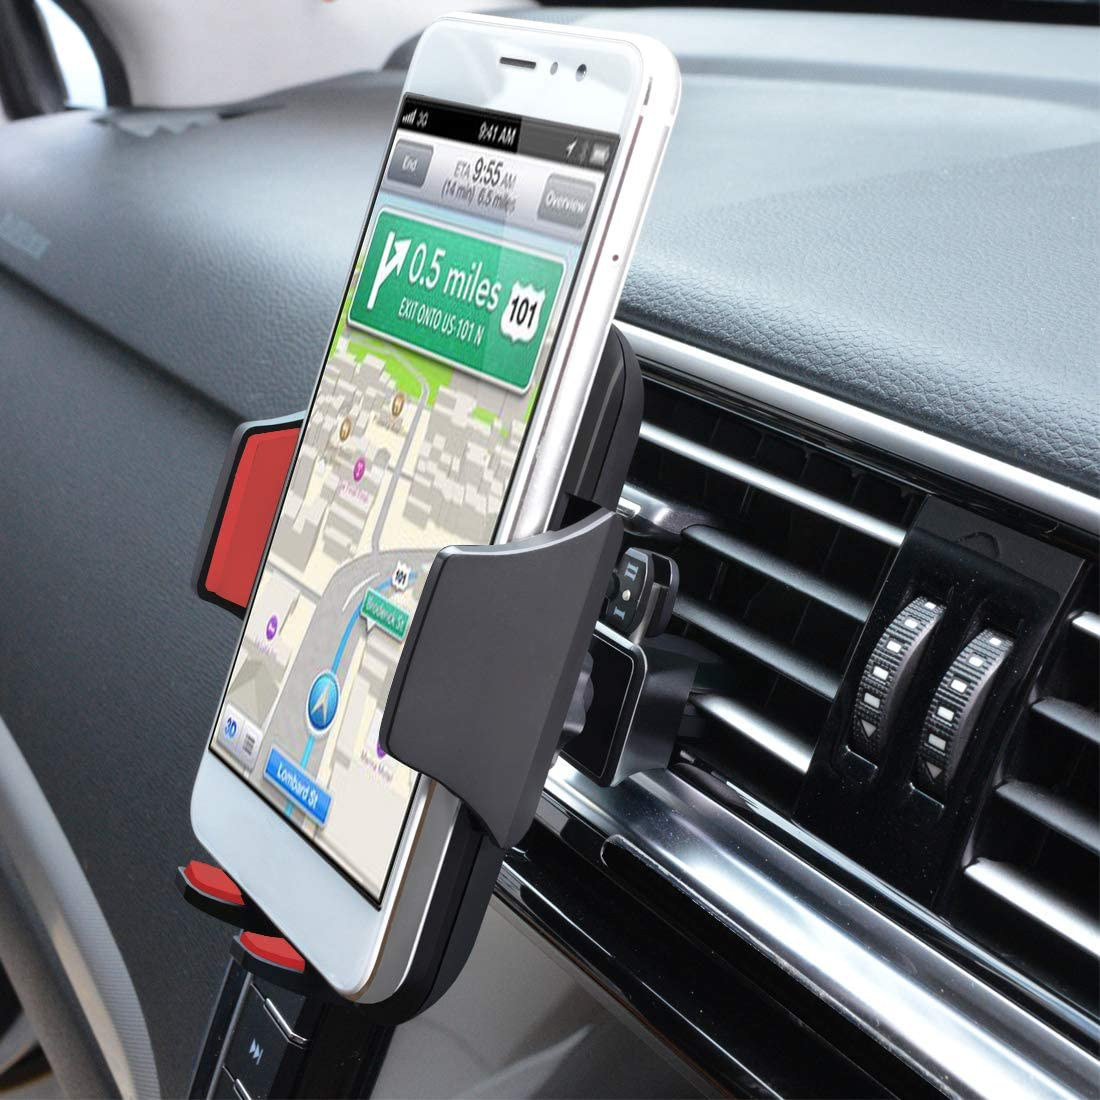 Car Phone Mount,Universal Air Vent Car Phone Mount Holder Compatible with iPhone Xs XS Max X 8 8 Plus 7 7 Plus SE 6s 6 Plus 6, Samsung,Galaxy S6 S7 S8 S9, Google,LG,Sony,Huawei,and Other Phones-red